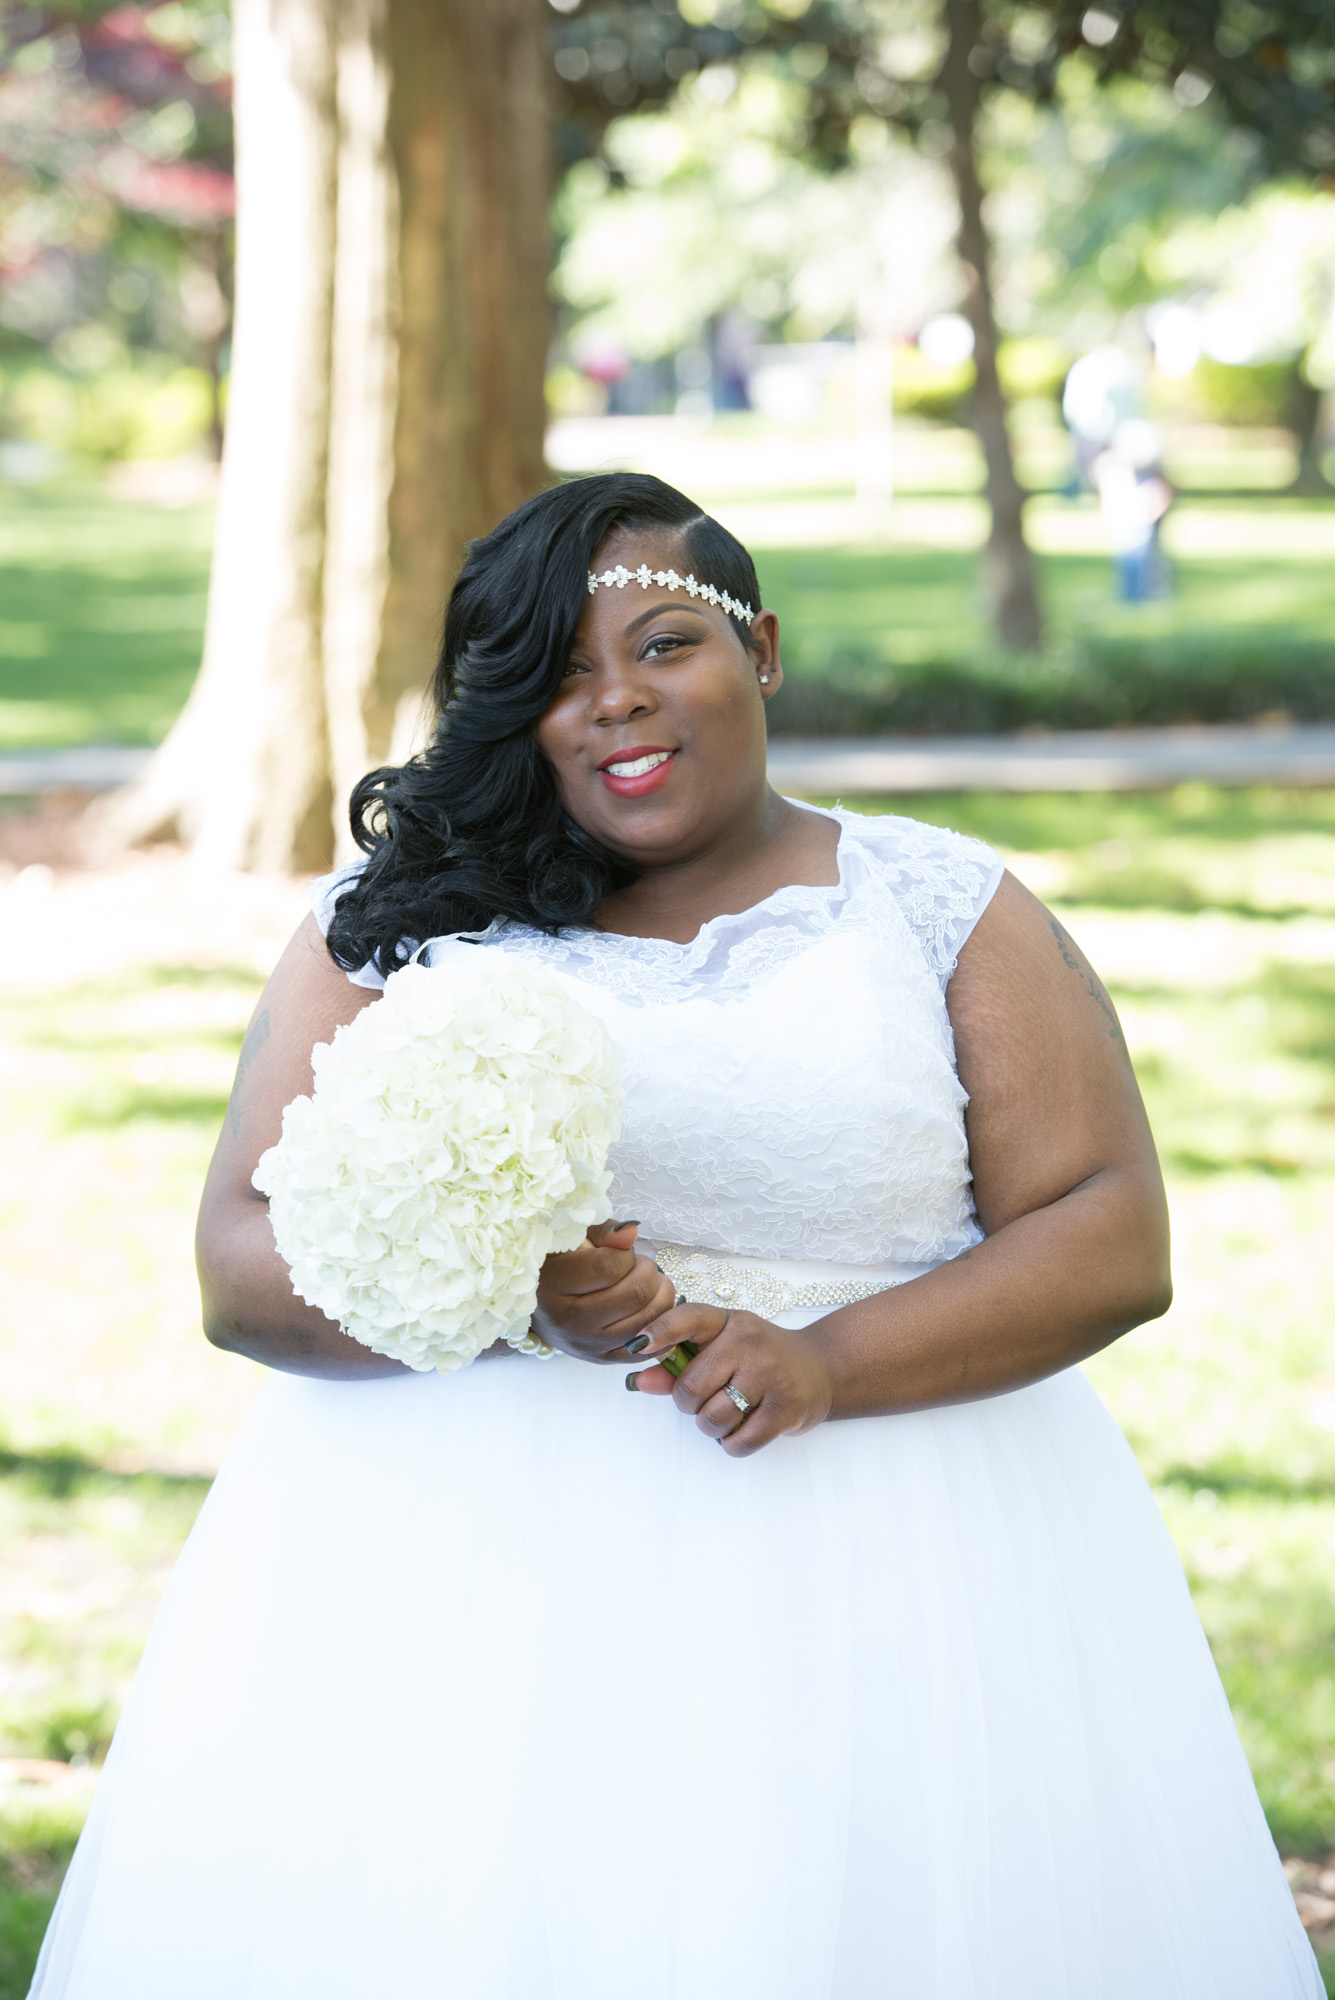 BRIDAL PORTRAITS | Historic Savannah Bridal Experience with Celebrity Stylist | Pretty Pear Bride